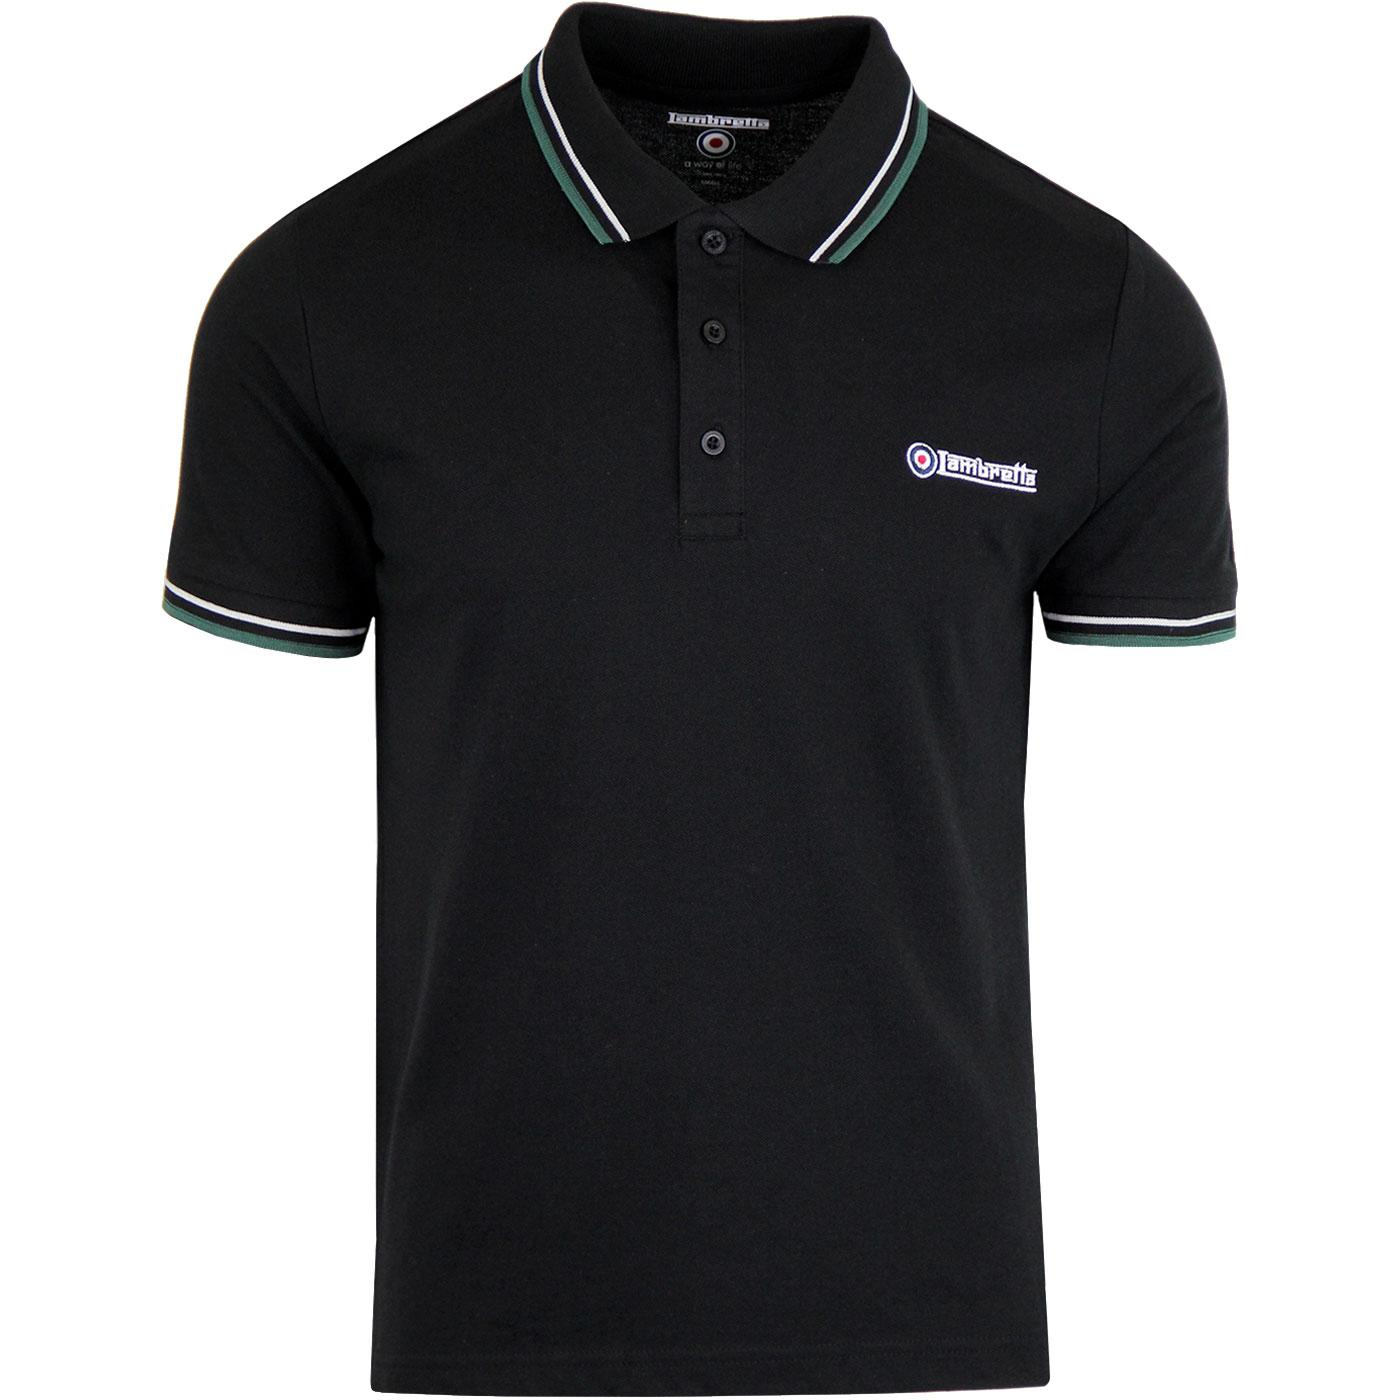 LAMBRETTA Retro Twin Tipped Pique Polo Shirt BLACK